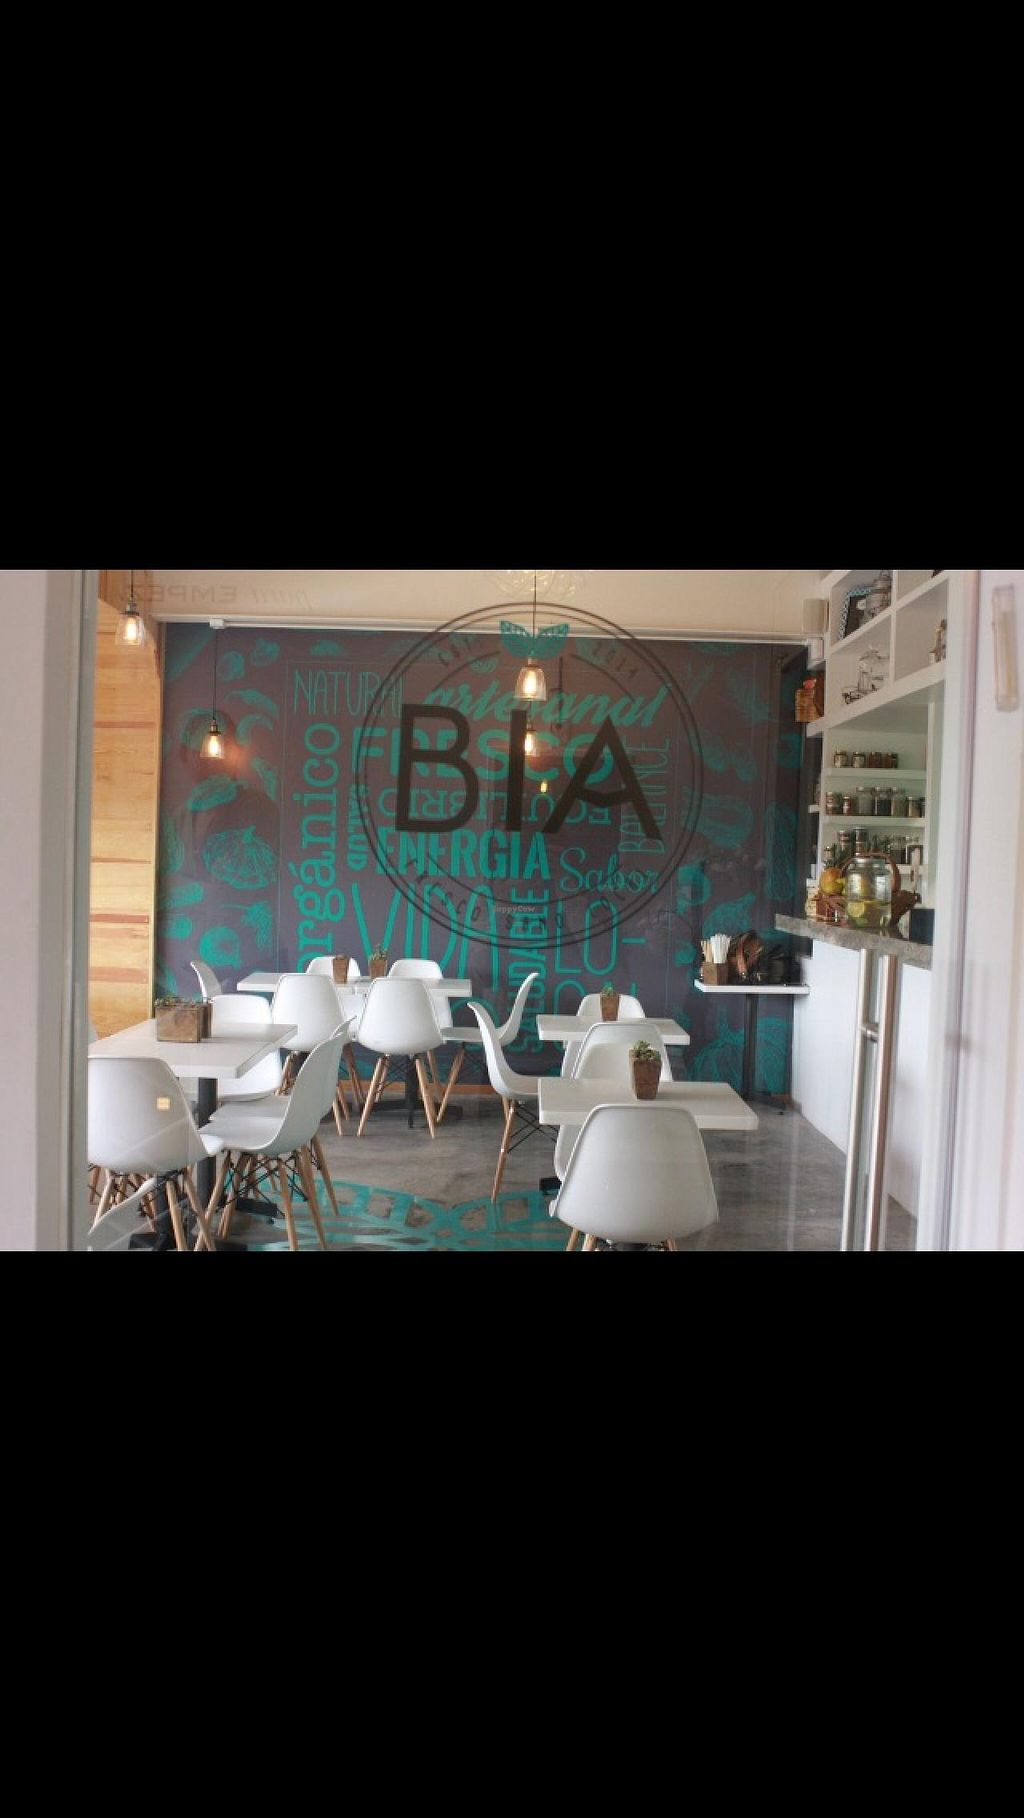 """Photo of BIA  by <a href=""""/members/profile/Margfasr"""">Margfasr</a> <br/>Restaurante!  <br/> May 22, 2015  - <a href='/contact/abuse/image/58563/103054'>Report</a>"""